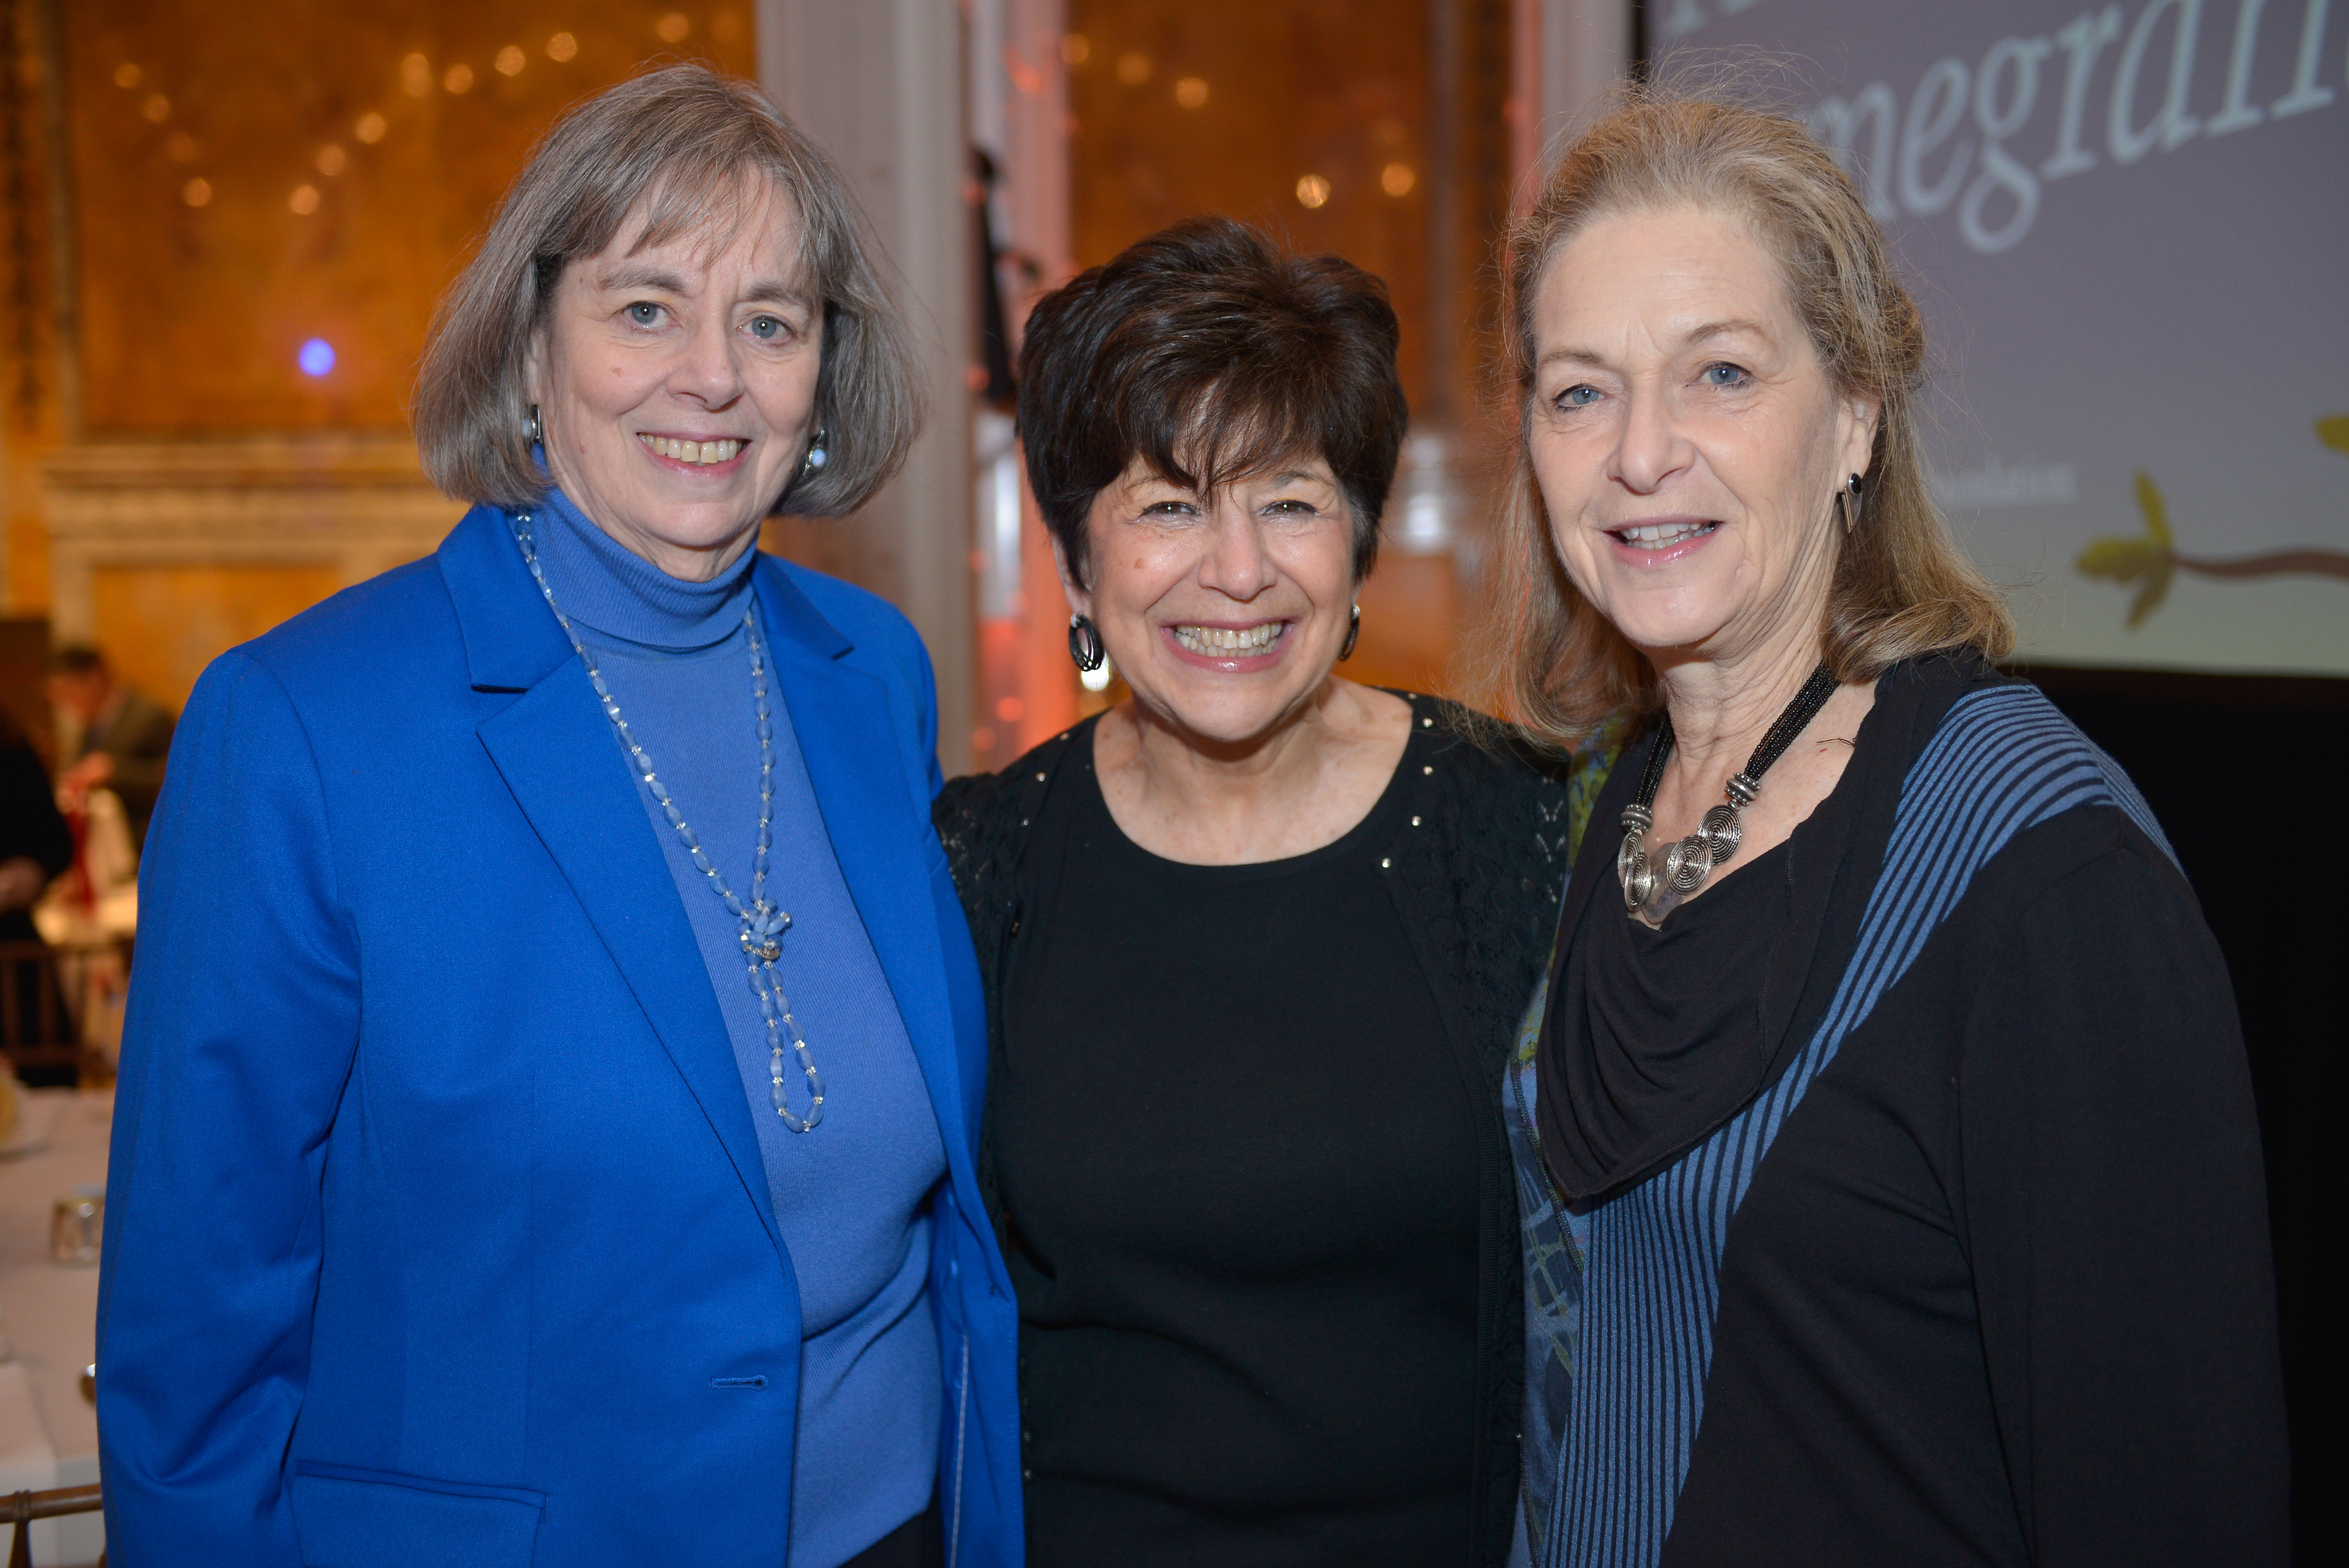 From left: Covenant Board member Betsy Dolgin Katz, Covenant Foundation Executive Director and 1991 Covenant Award recipient Harlene Appelman and Arnee Winshall.